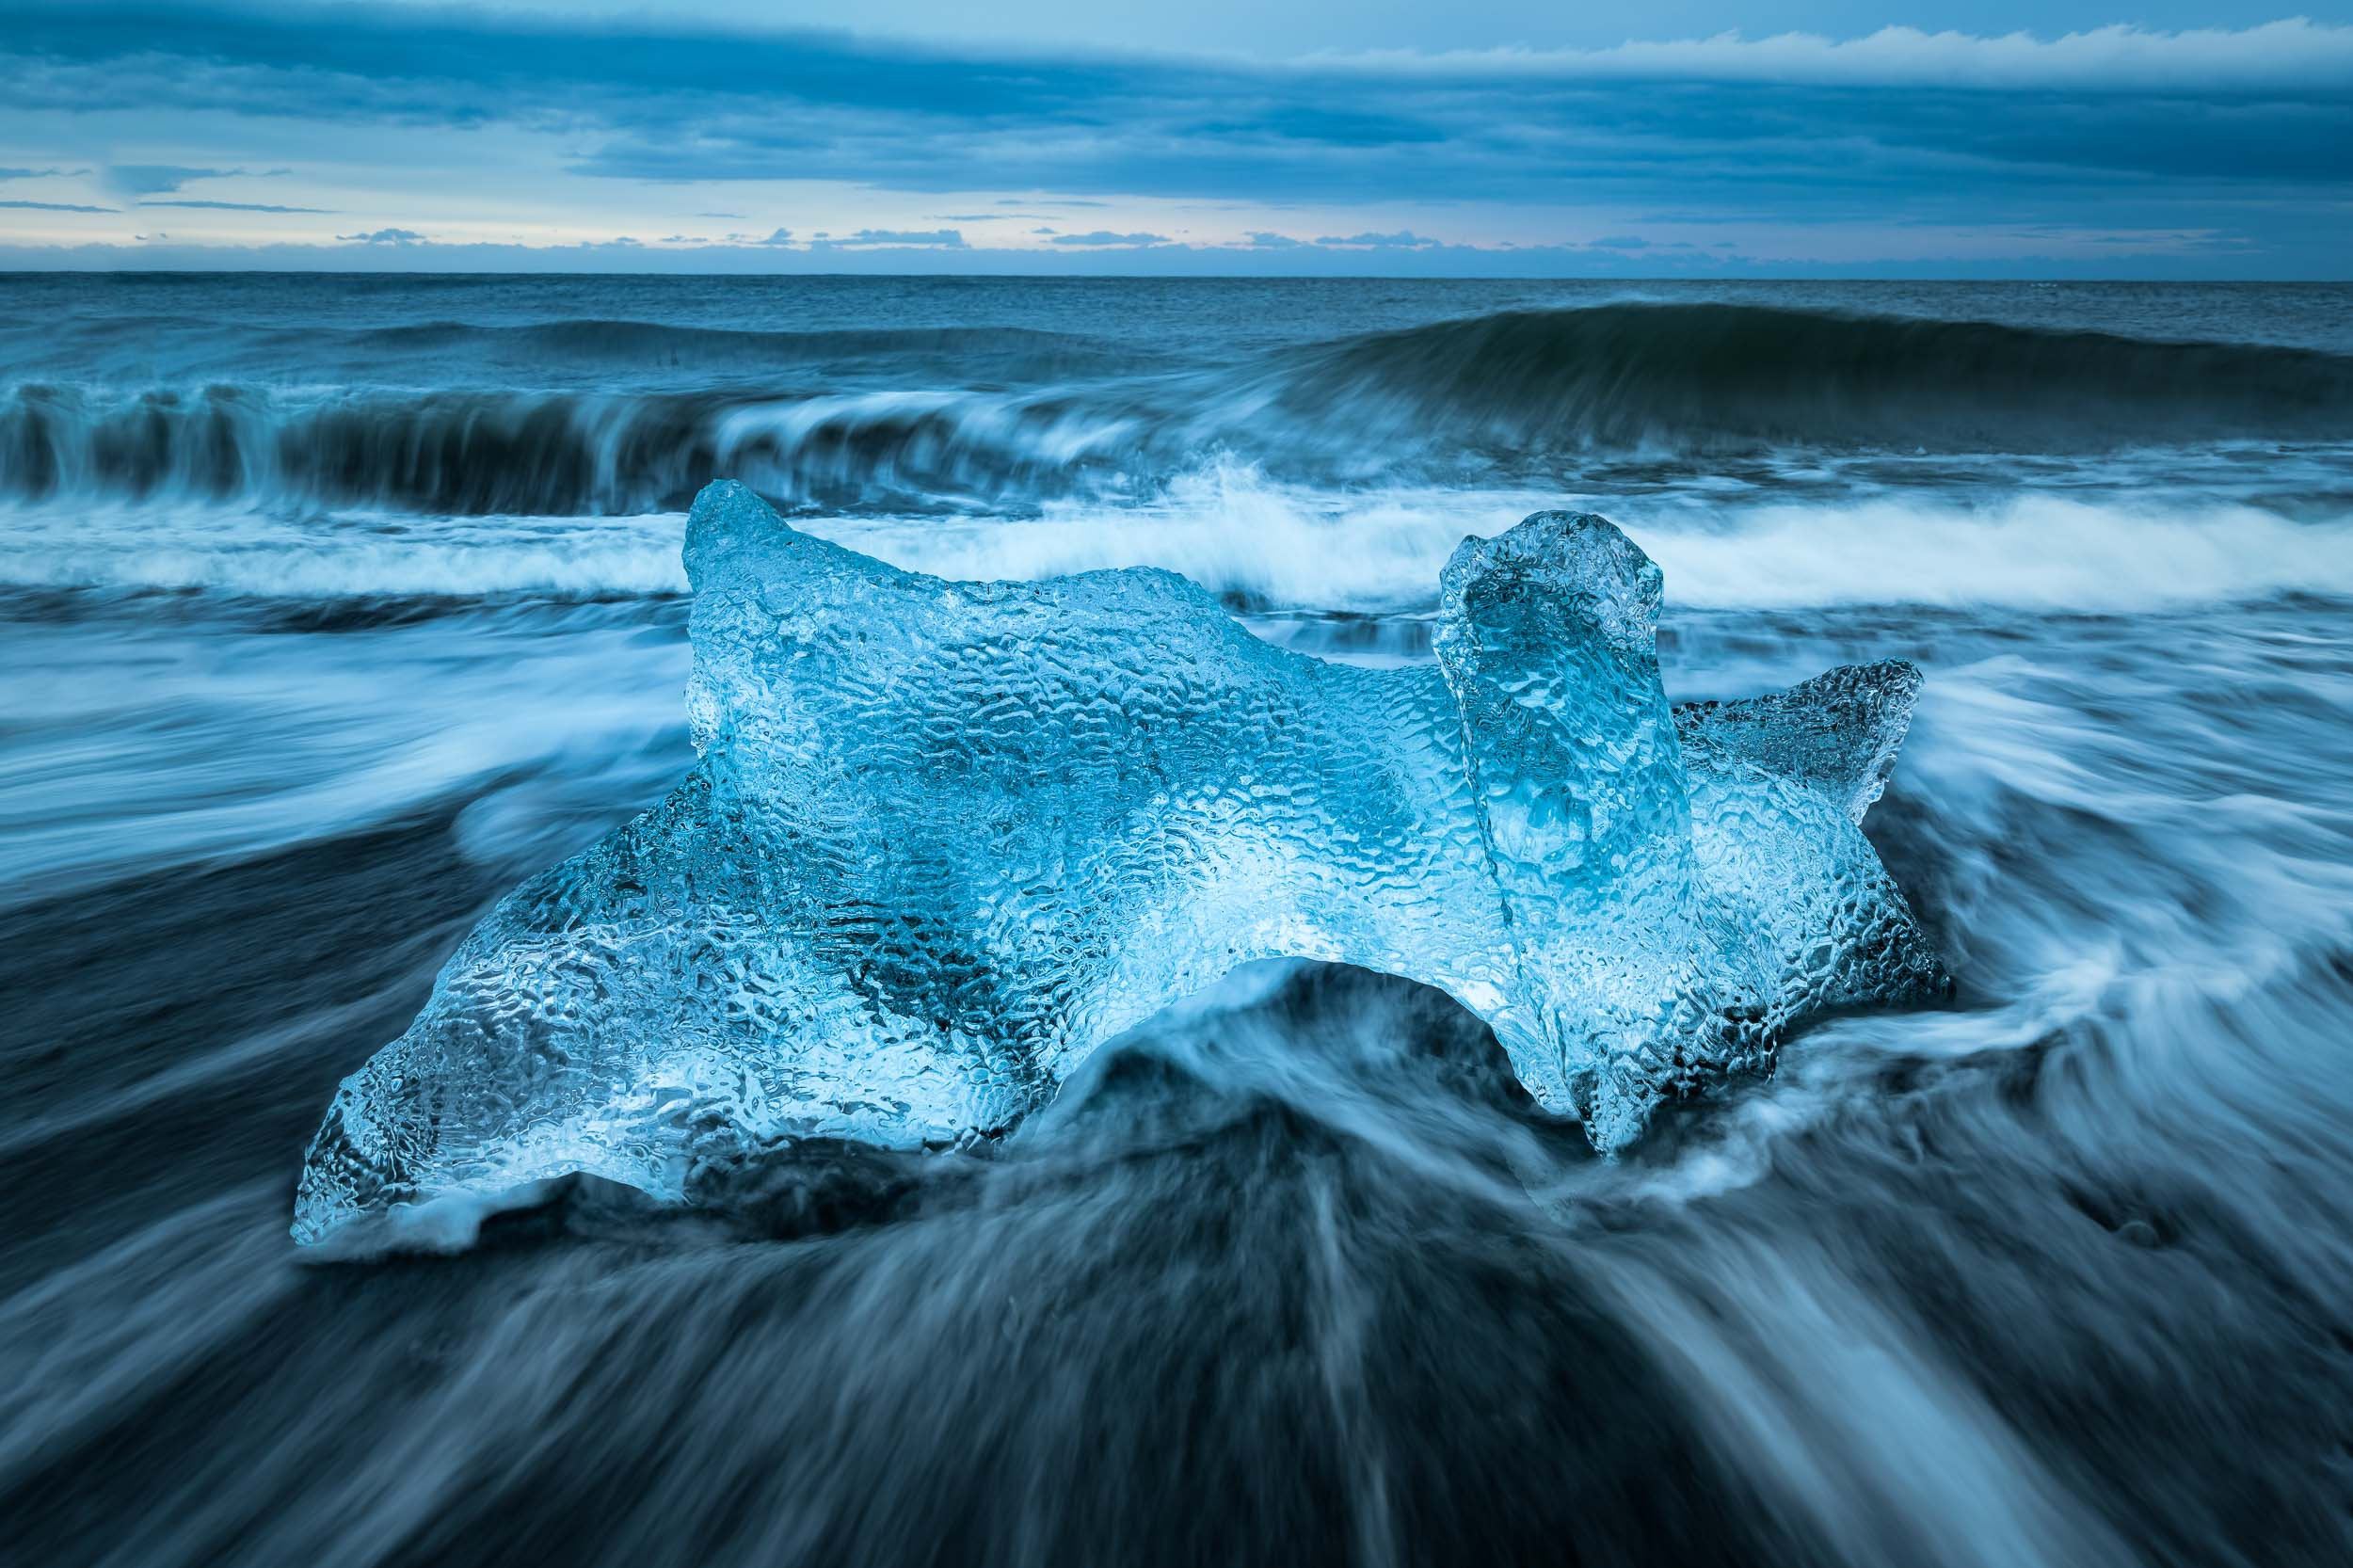 1/3 of a second, just enough time to capture the motion for the waves in Iceland.